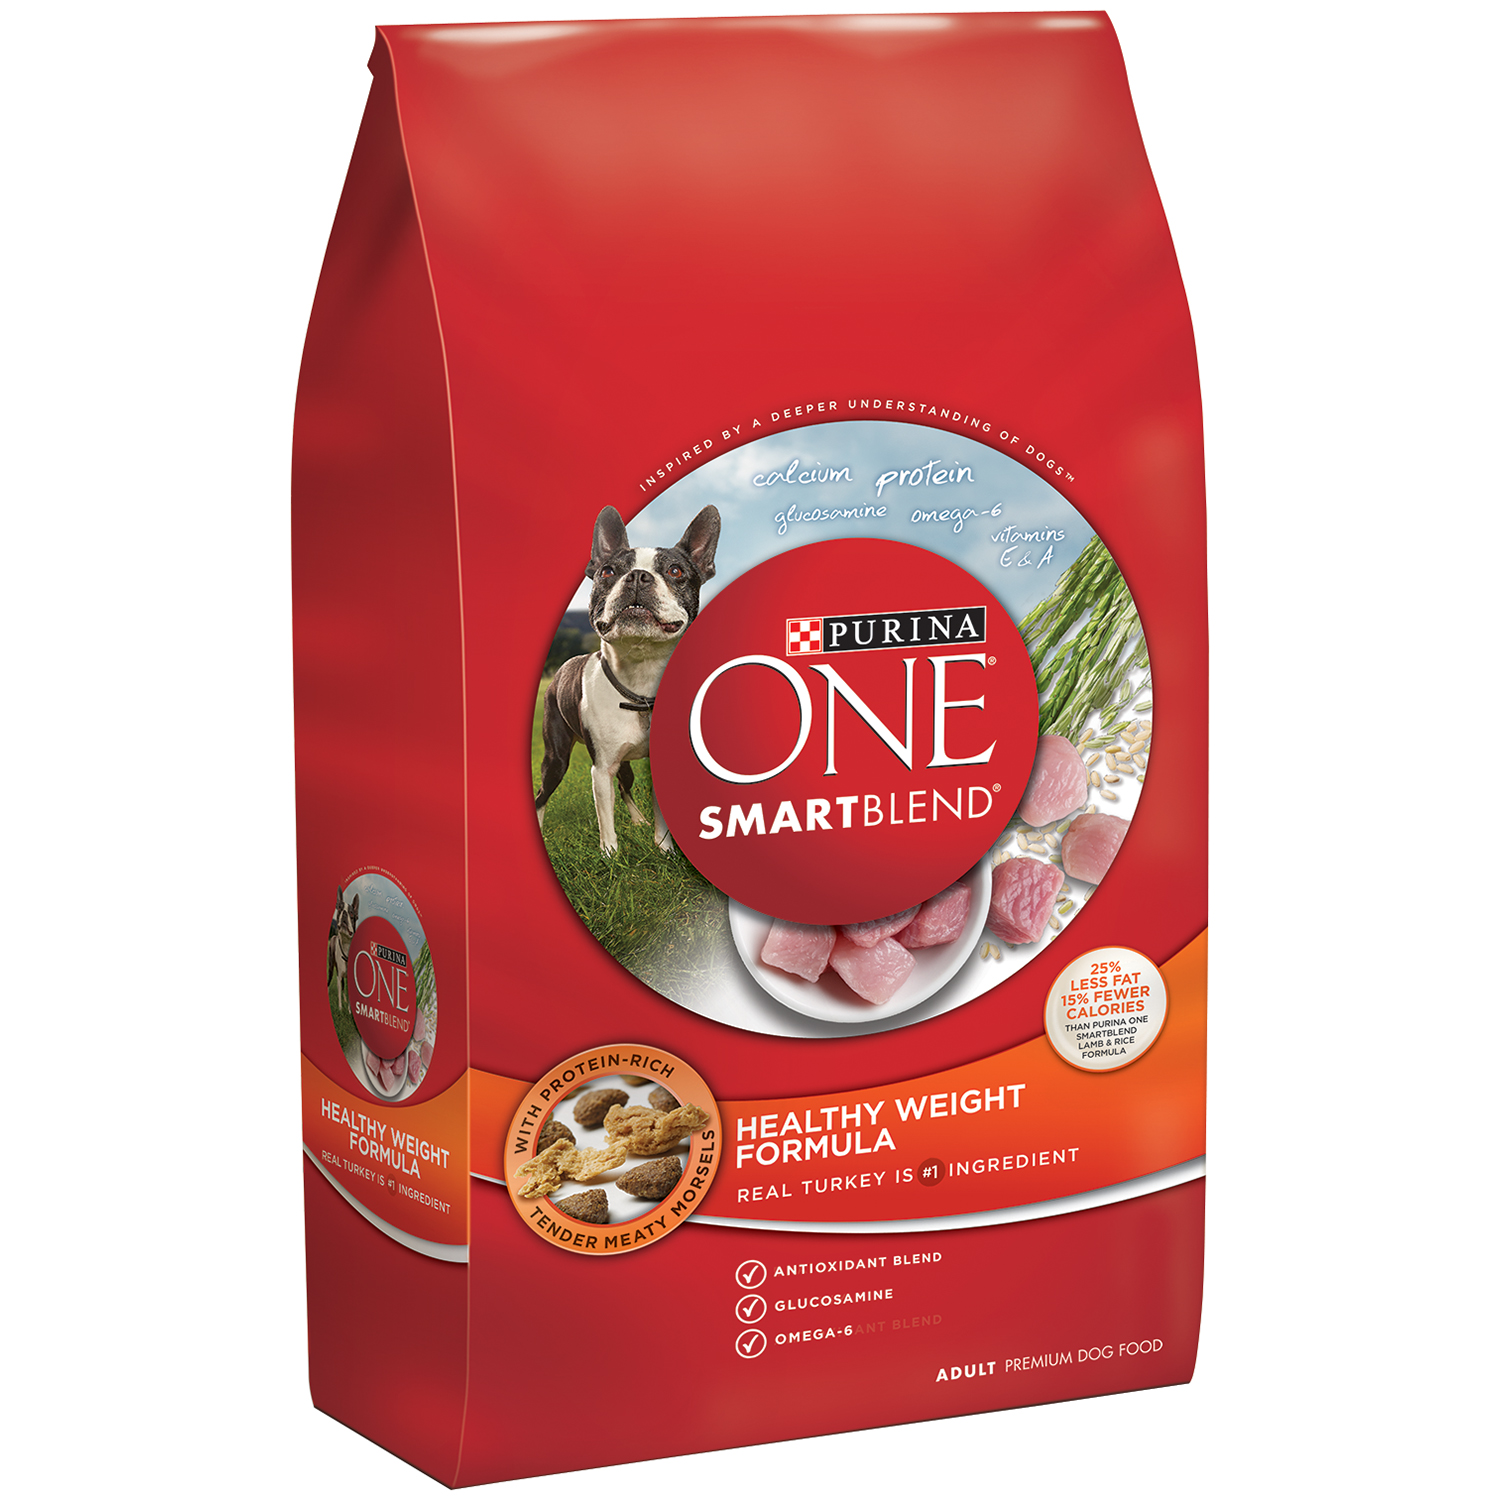 Purina ONE SmartBlend Healthy Weight Formula Adult Premium Dog Food 8 lb. Bag